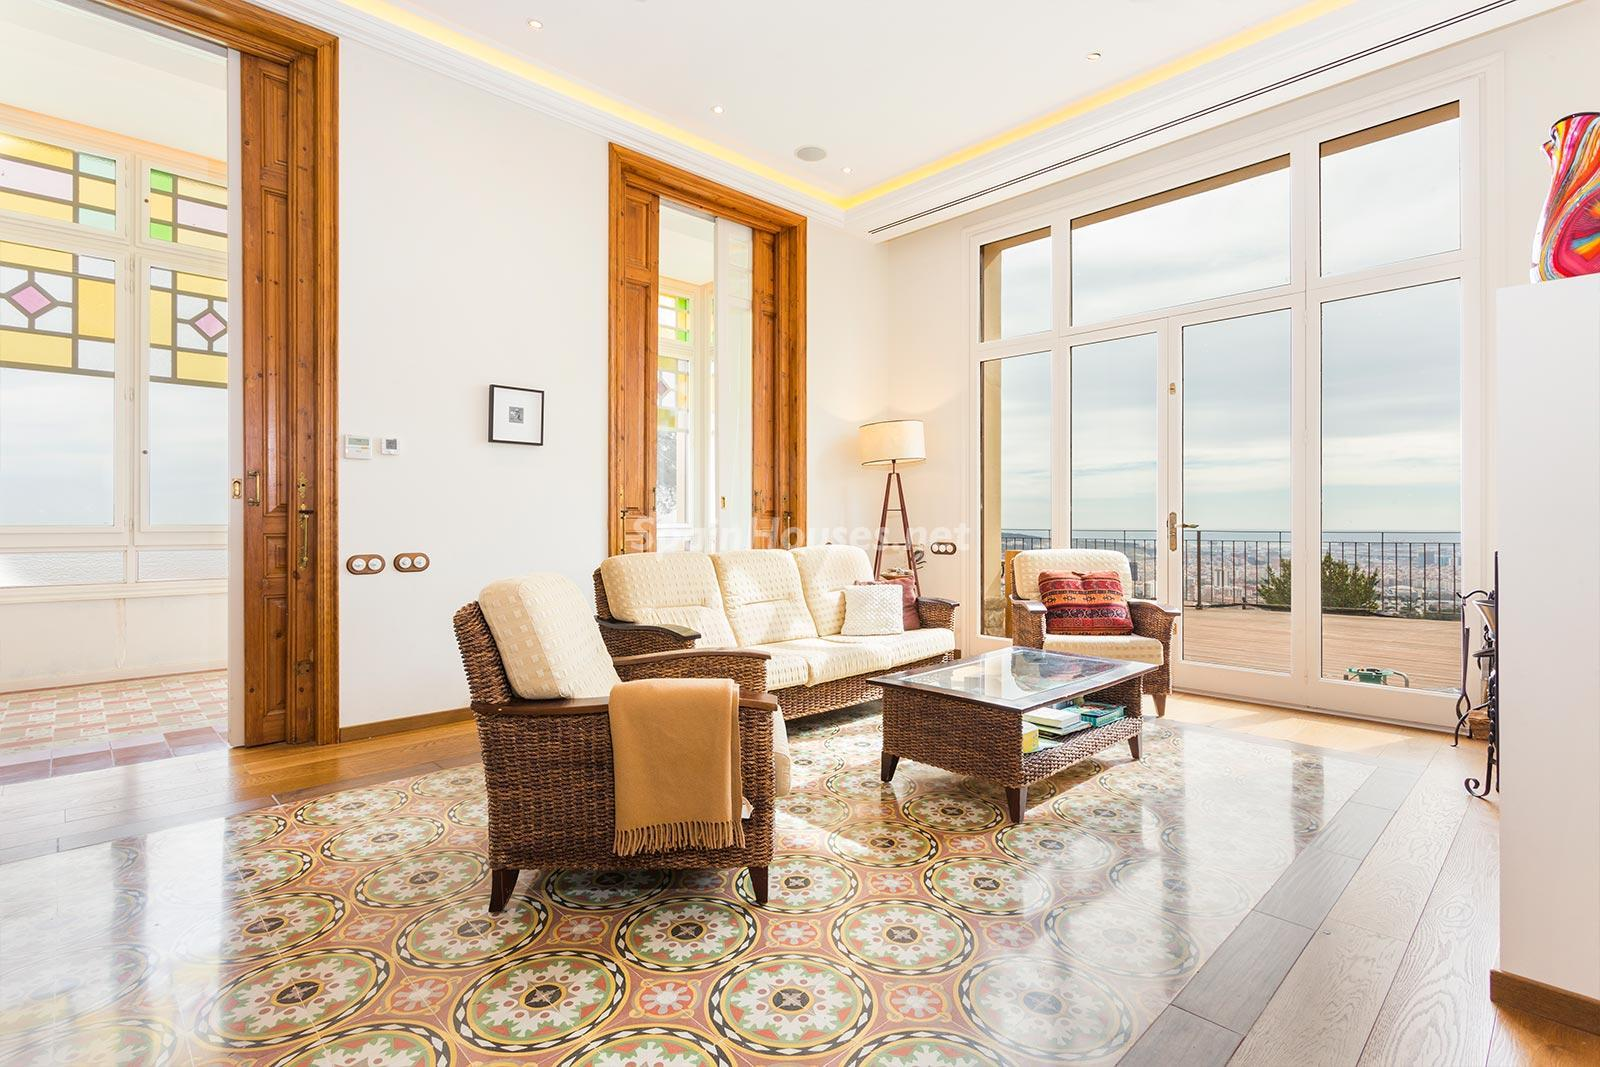 5. House for sale in Sarrià Barcelona - Exclusive 8 Bedroom Villa For Sale in Sarrià, Barcelona